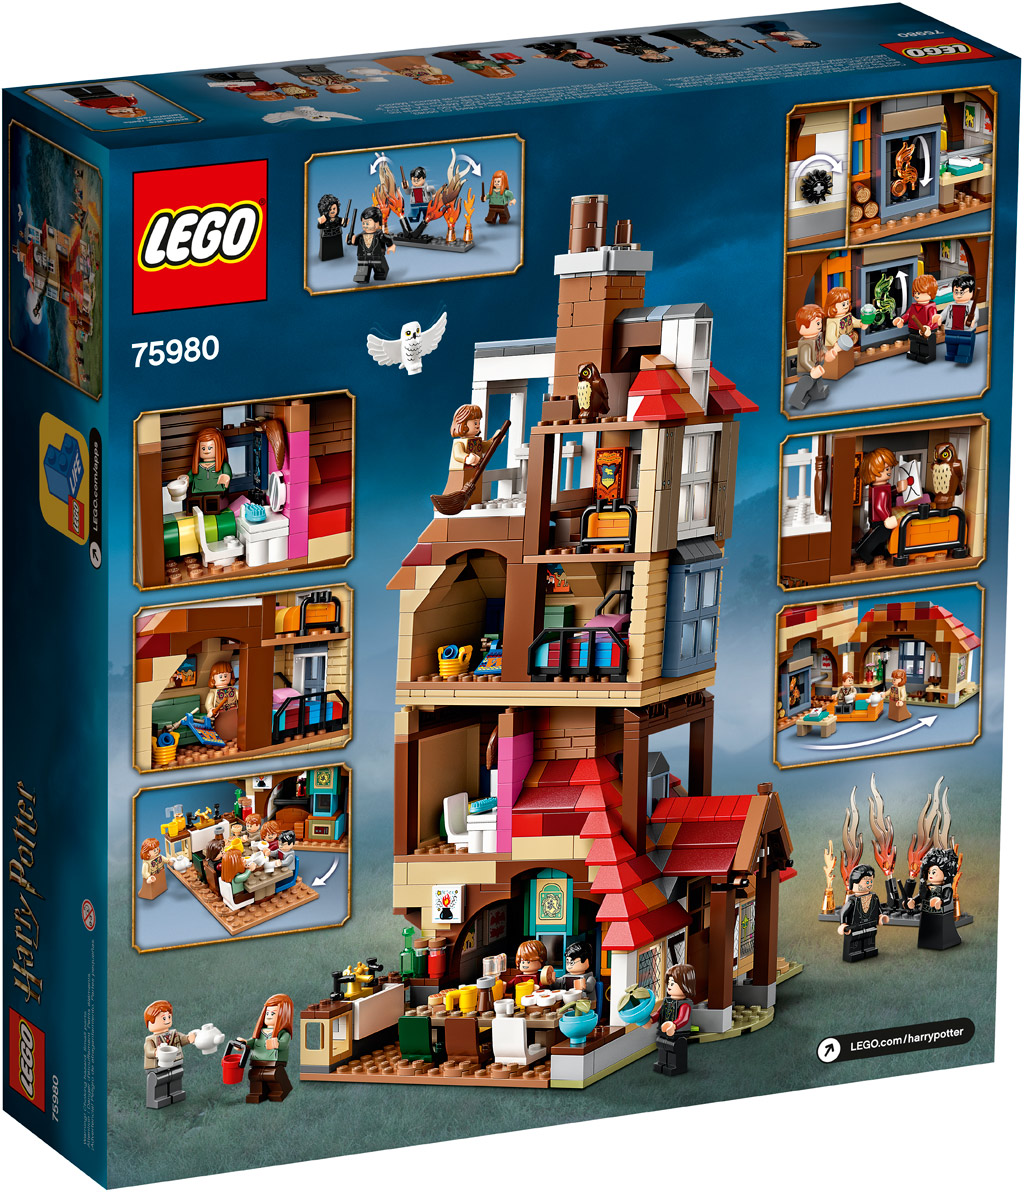 lego-harry-potter-75980-attack-on-the-burrow-2020-box-back zusammengebaut.com